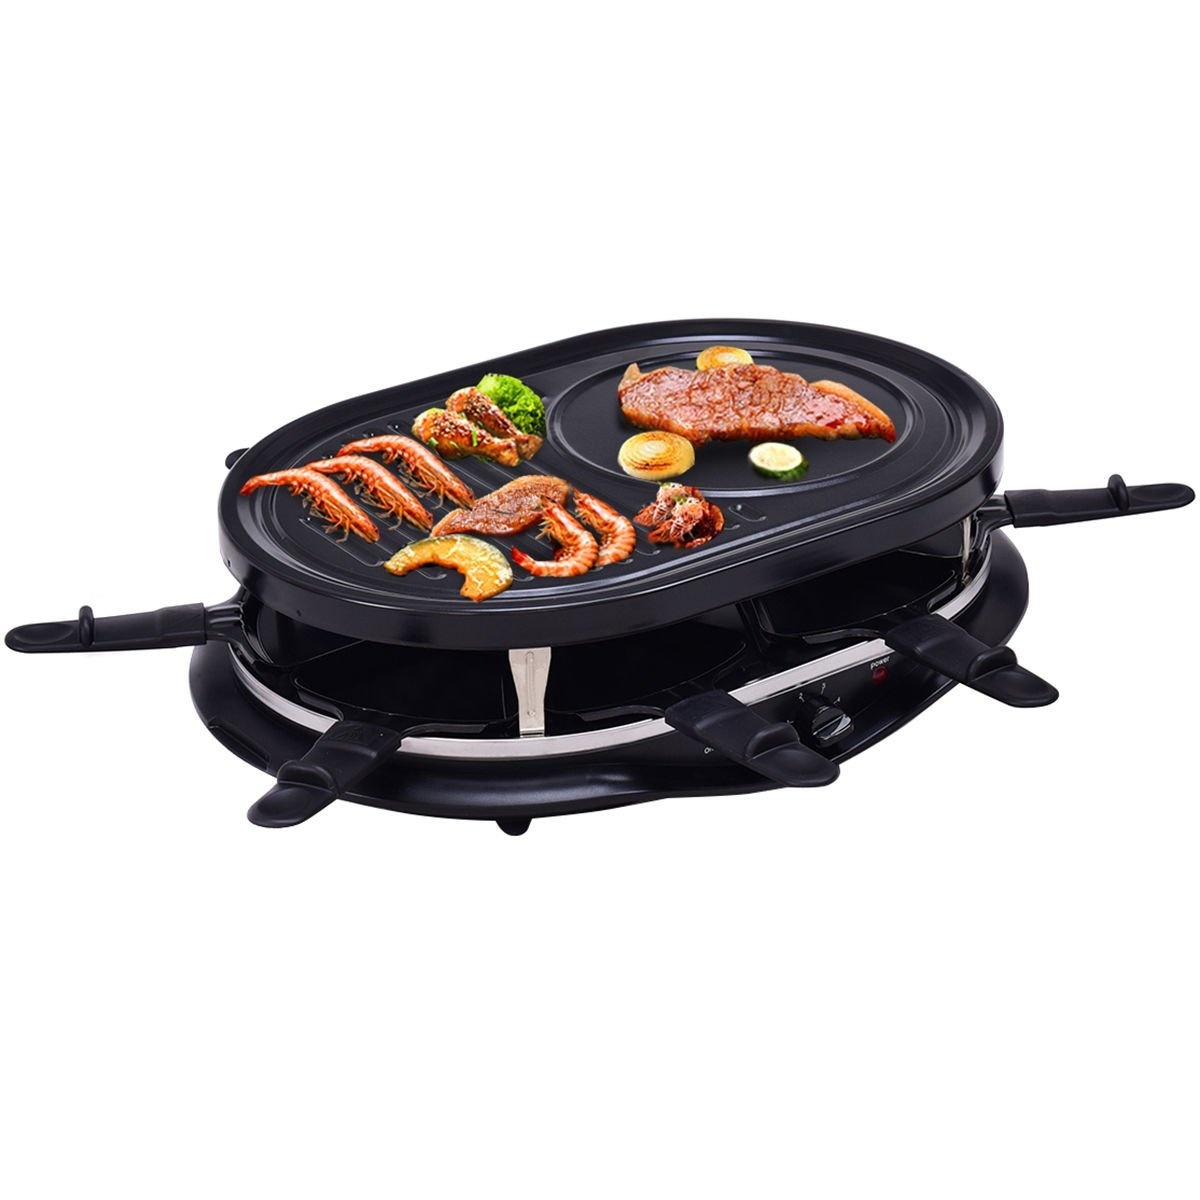 Raclette Grill Australia costzon raclette grill 1200w for 8 non stick grill plate by